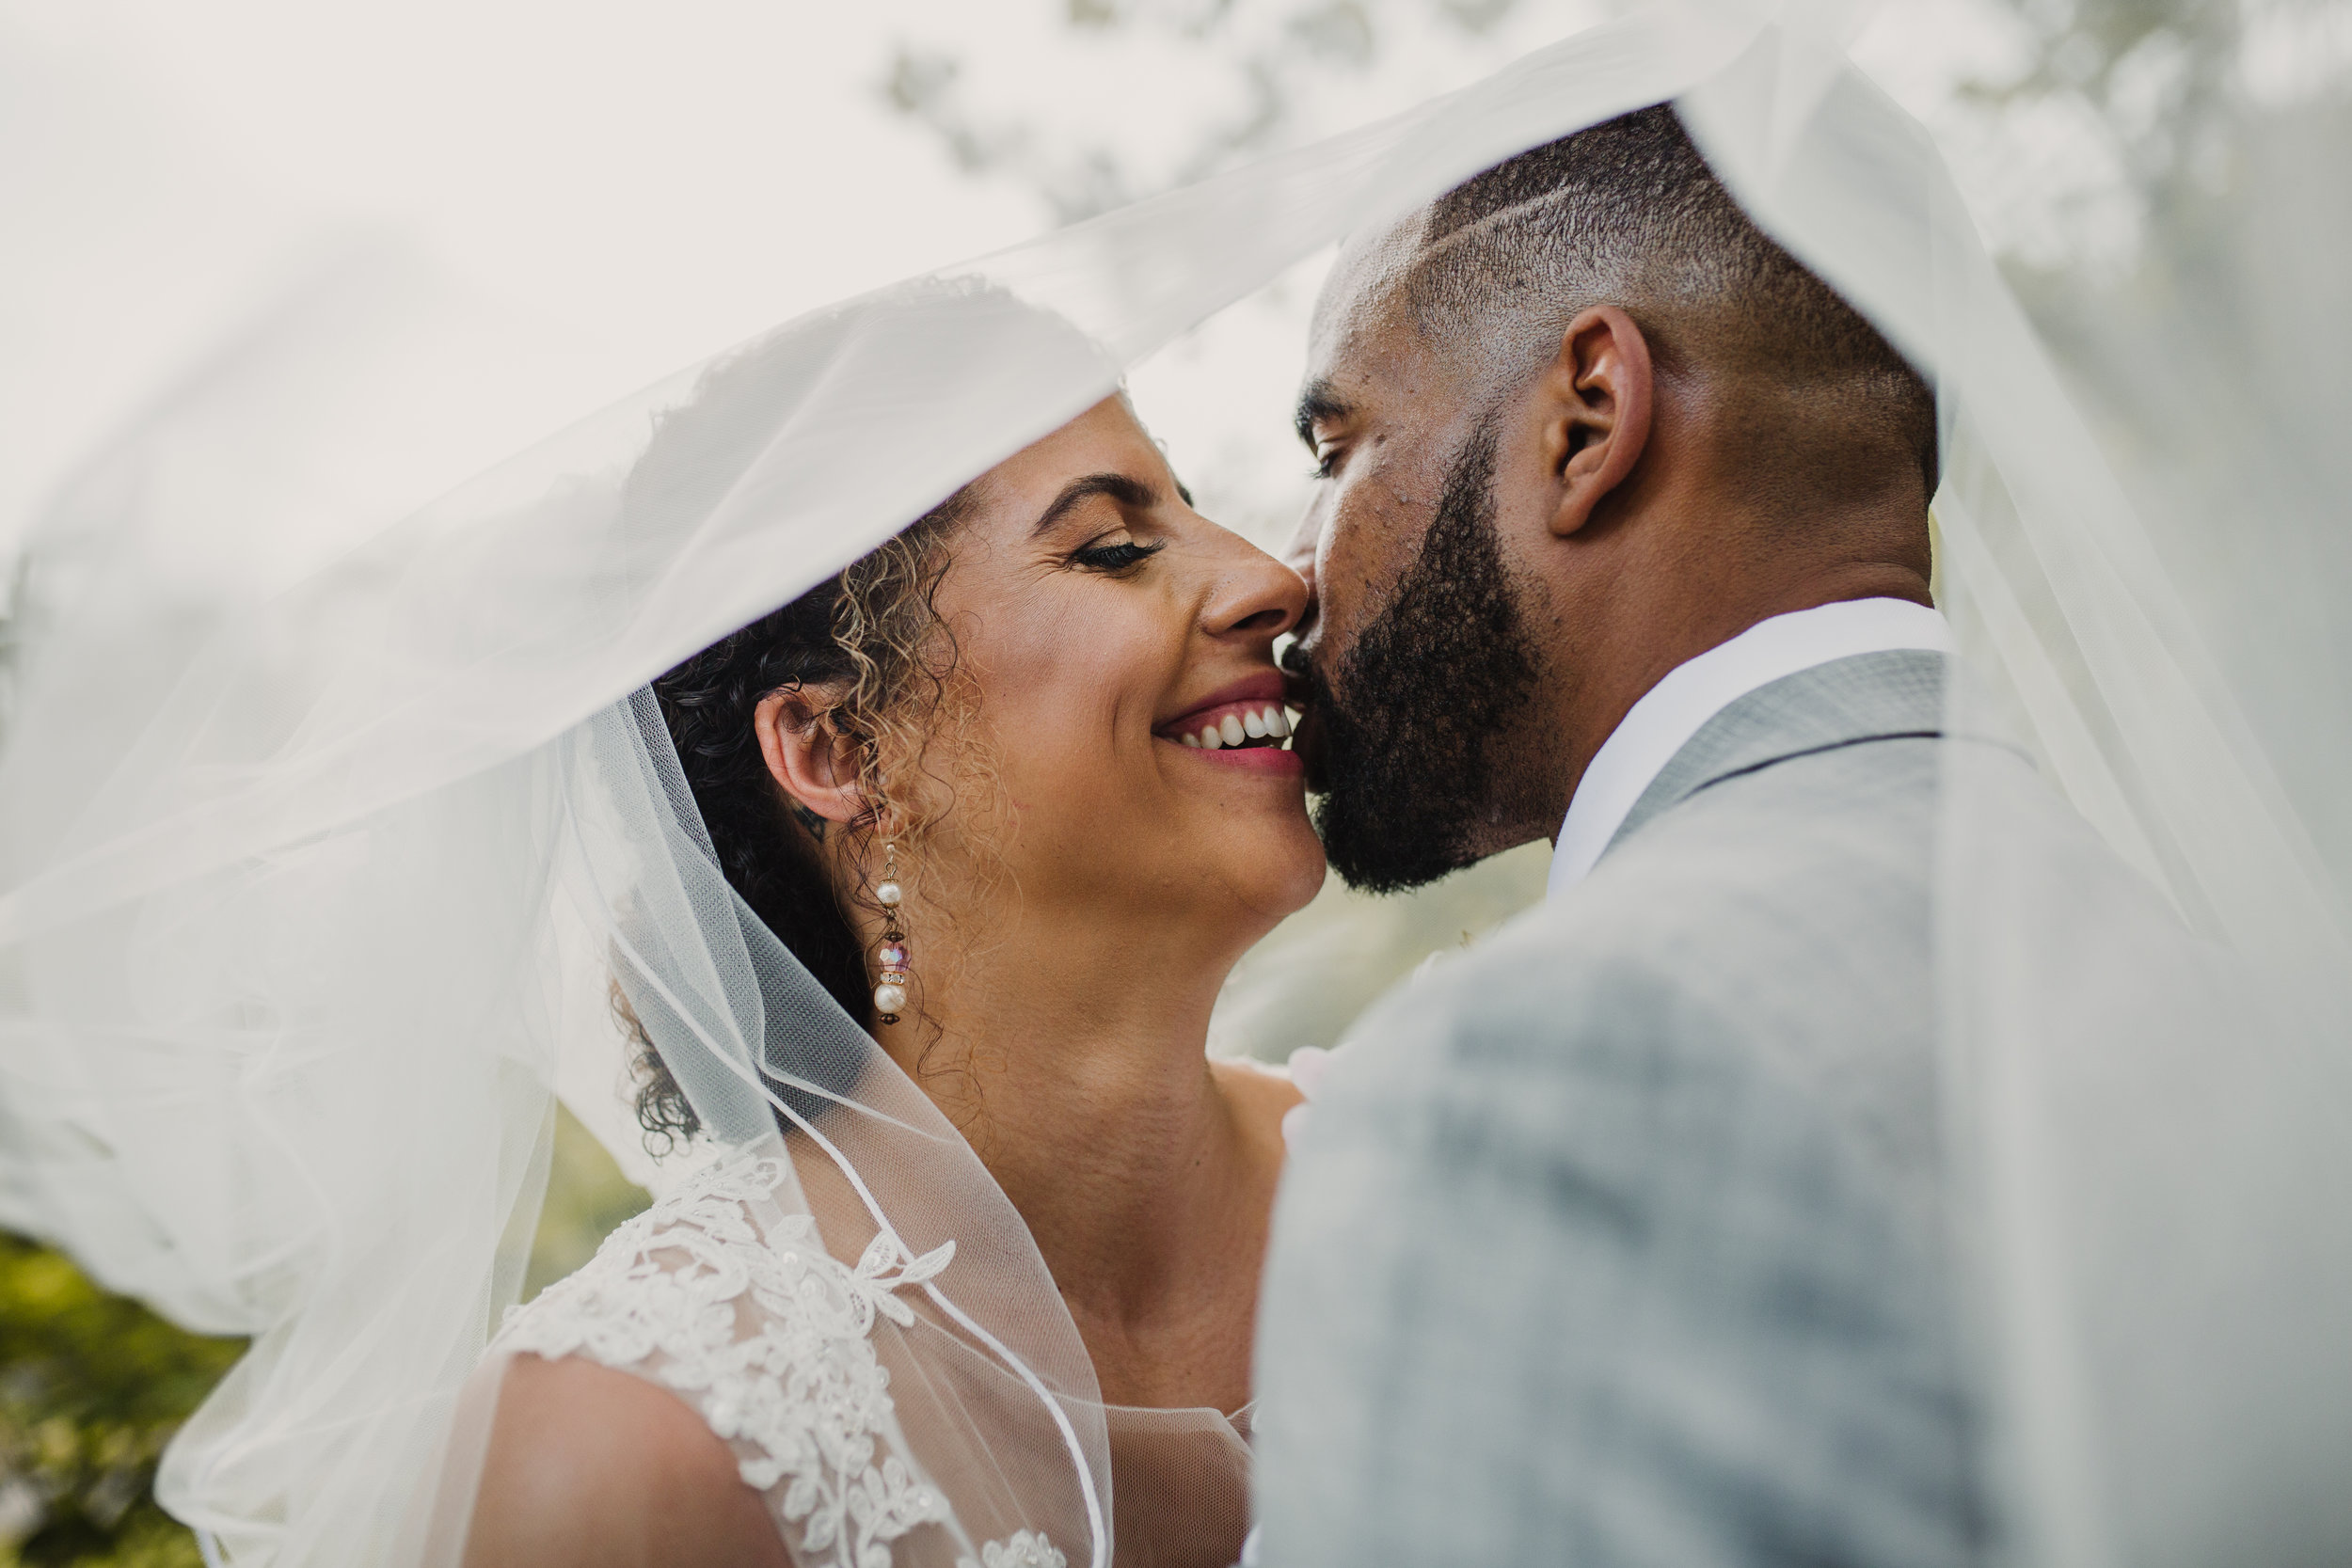 Kendra & Cameron - Their first dance was a compilation of three songs from oldies to Drake, their custom cake toppers were repping their favorite teams, and Kendra & Cameron didn't let the Virginia heat stop them from taking some fire portraits. Check out all the goodness from this spring wedding.